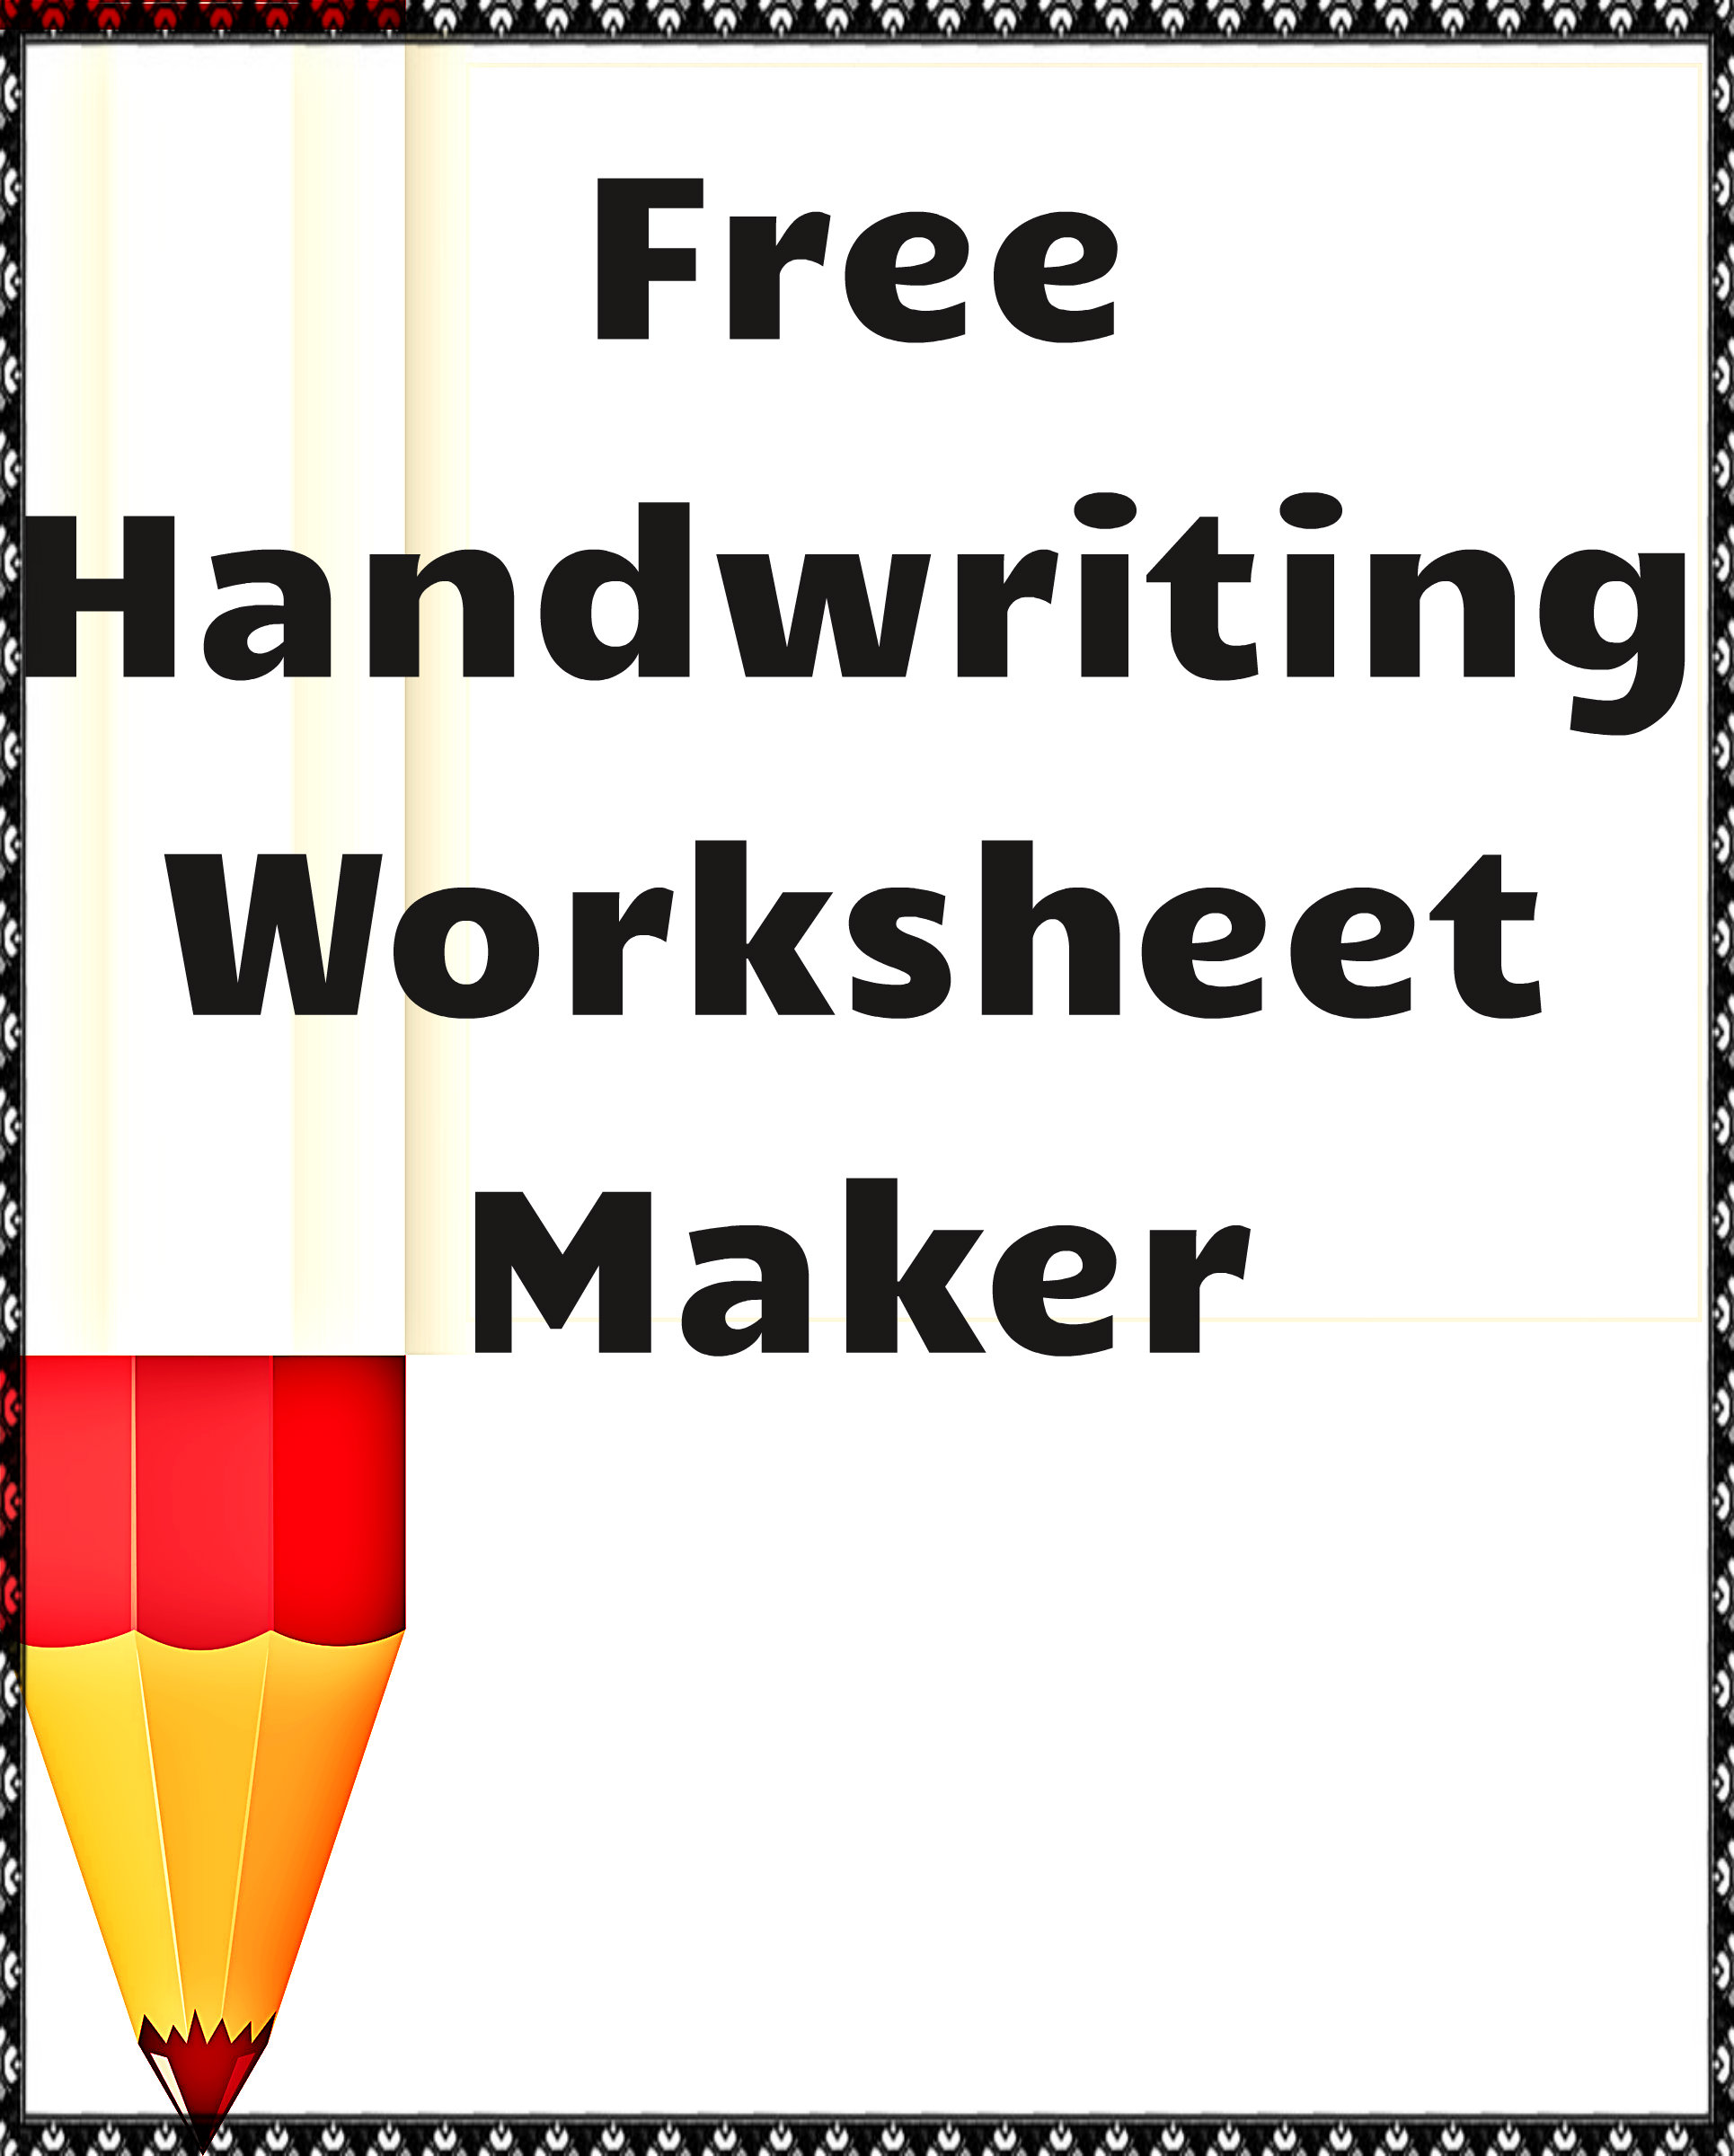 Worksheet Handwriting Worksheet Maker handwriting worksheet maker free classroom tools readyteacher com maker